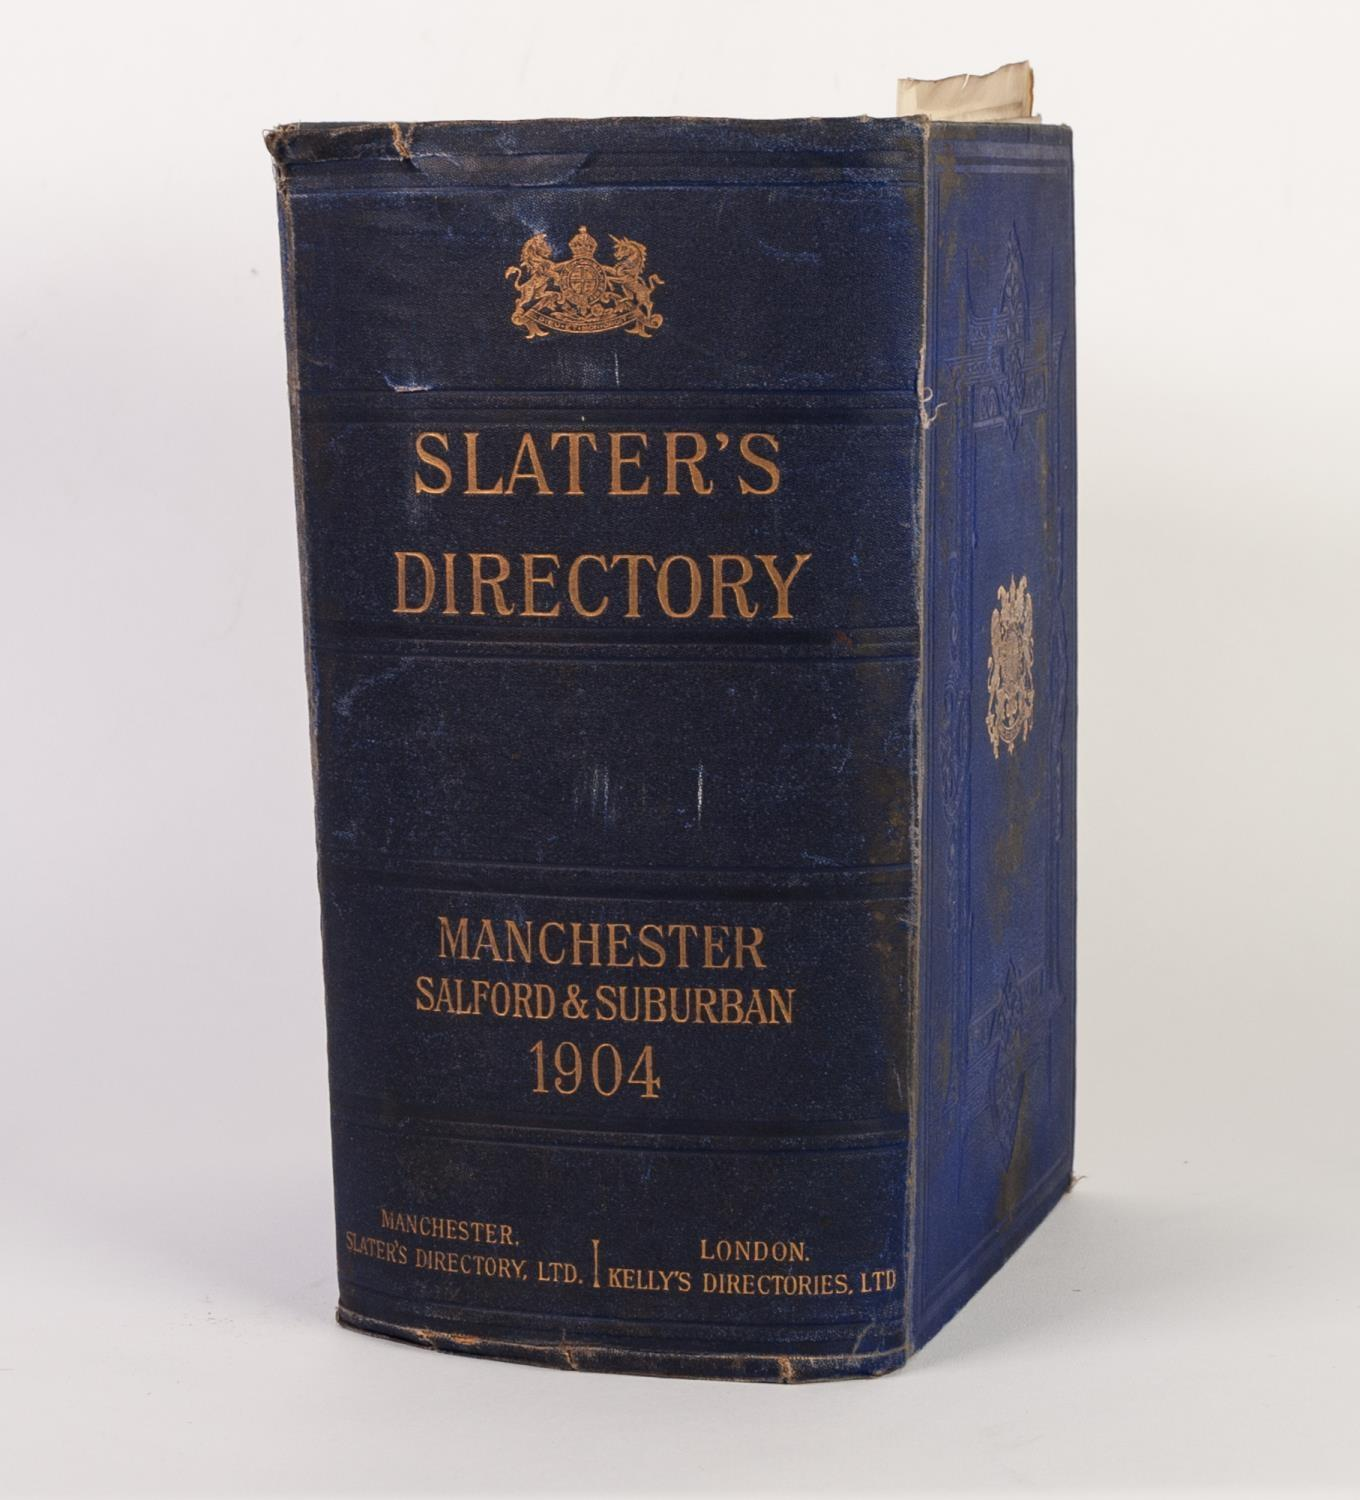 SLATERS MANCHESTER SALFORD AND SUBURBAN DIRECTORY 1904. Complete with plan of Manchester amd map